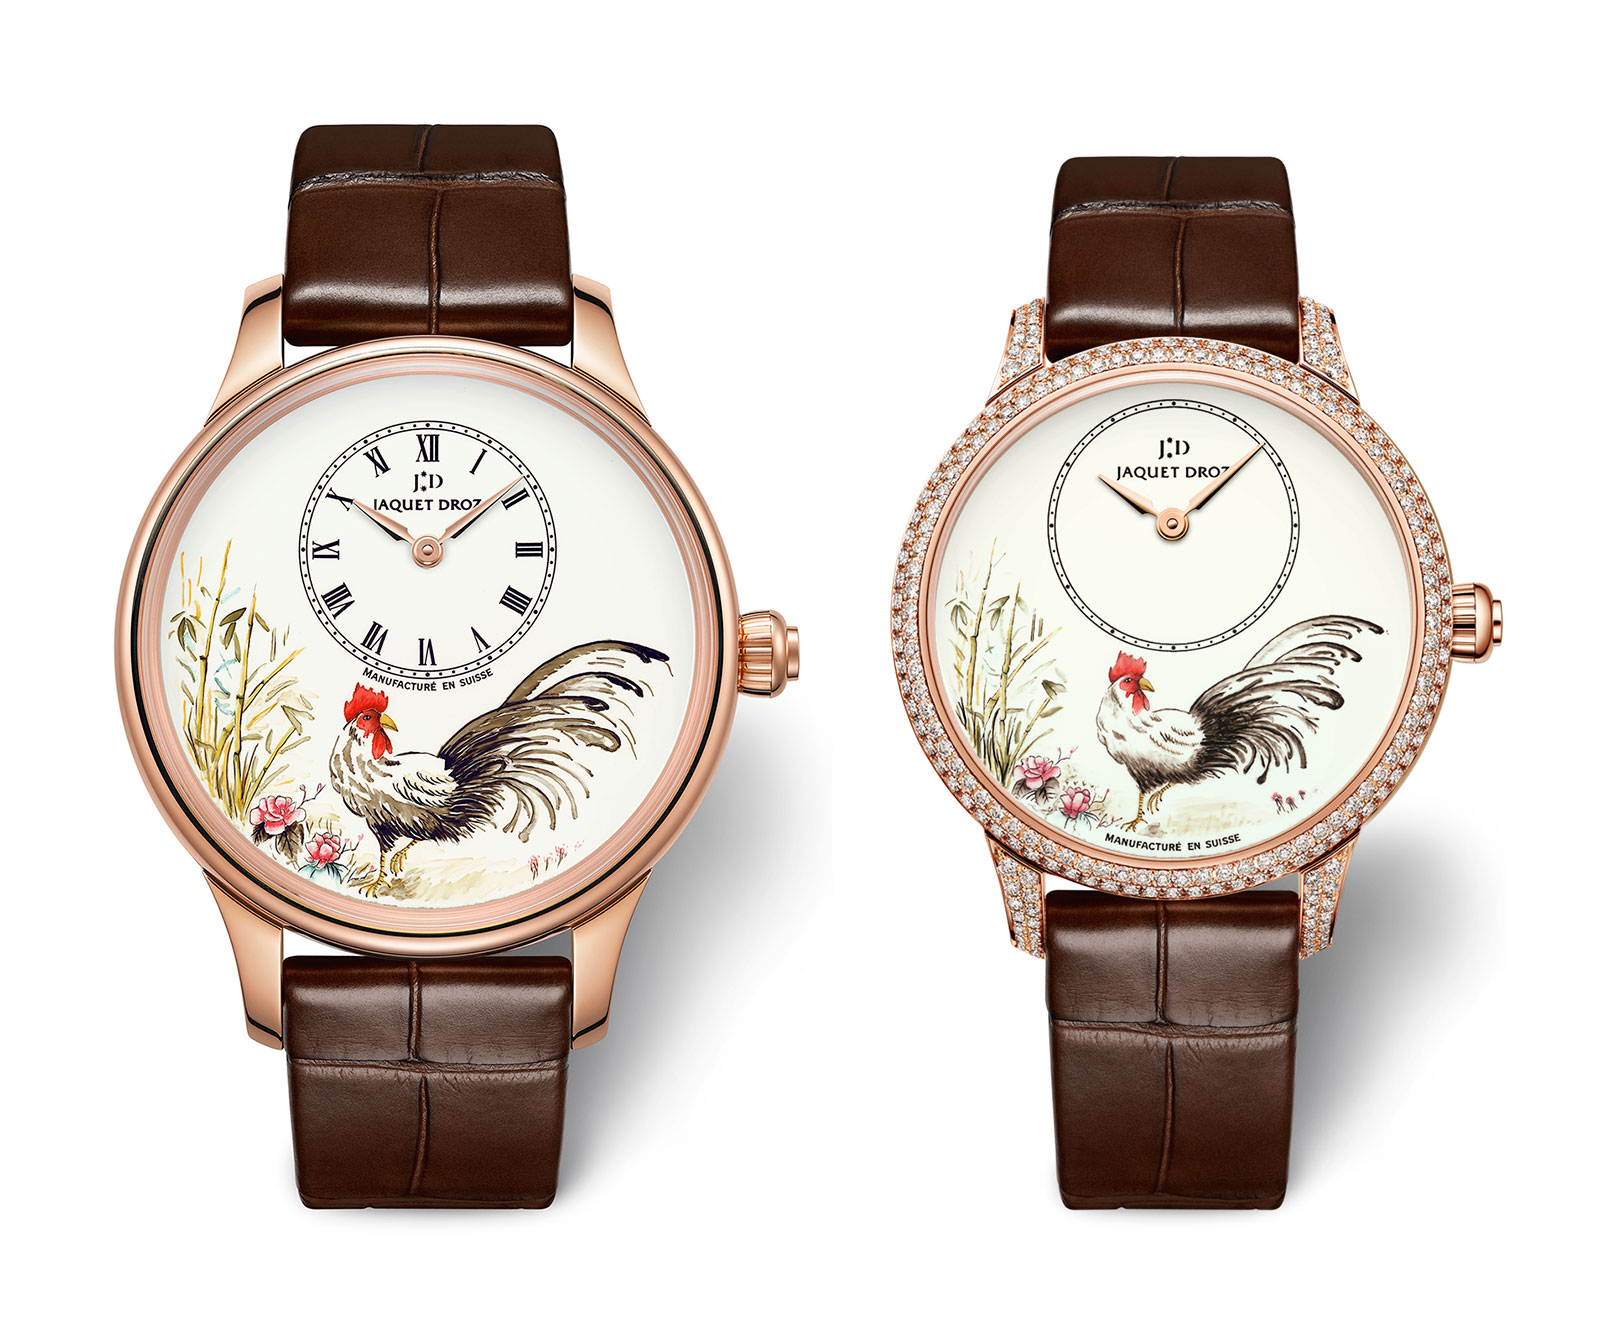 Jaquet Droz Petite Heure Minute Rooster 2